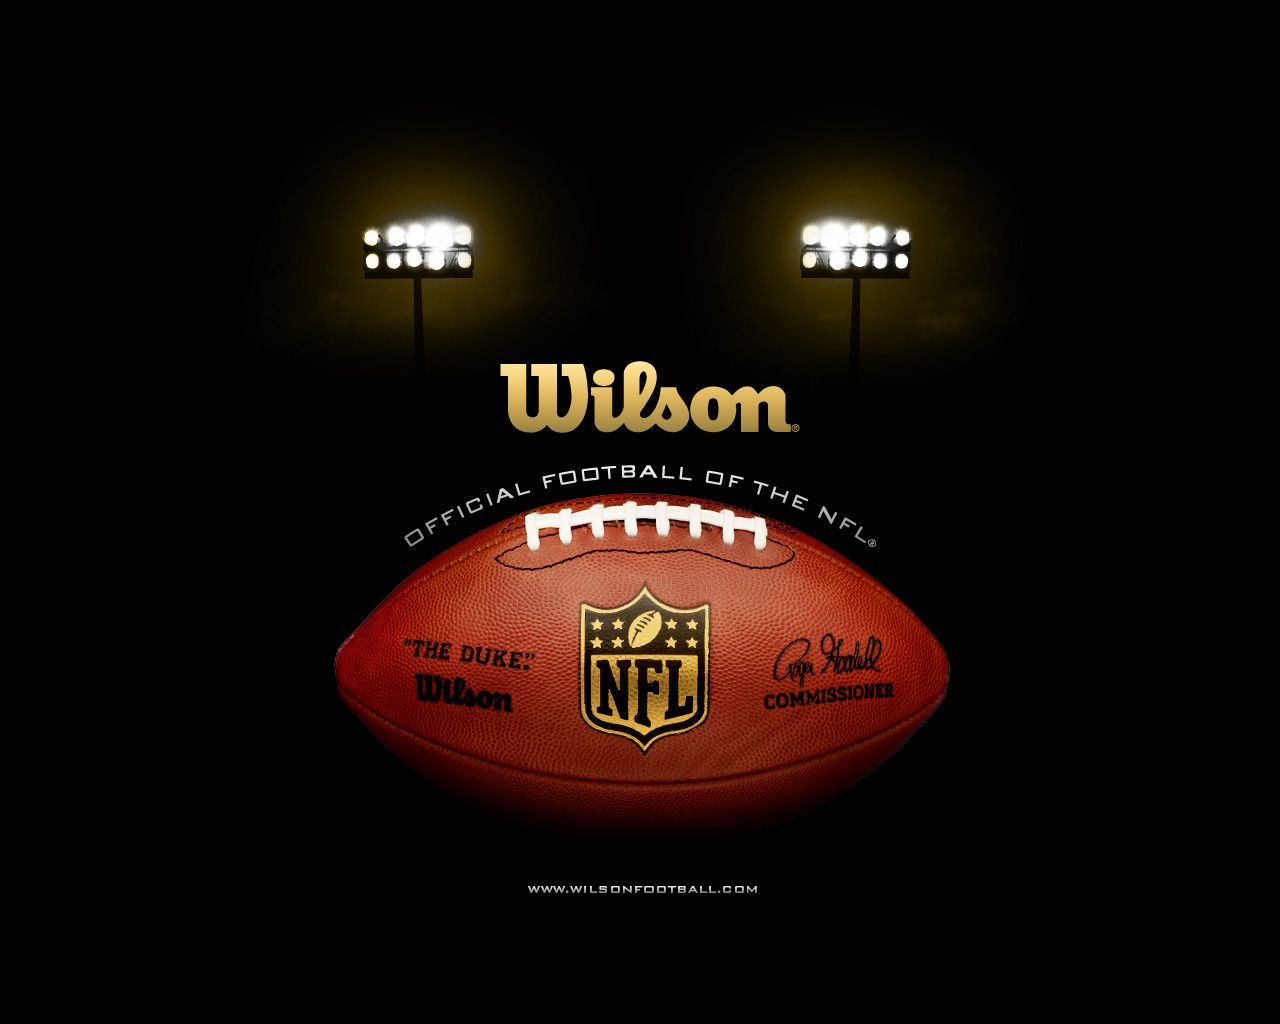 Nfl football wallpaper sf wallpaper collection of football wallpaper nfl on hdwallpapers voltagebd Gallery